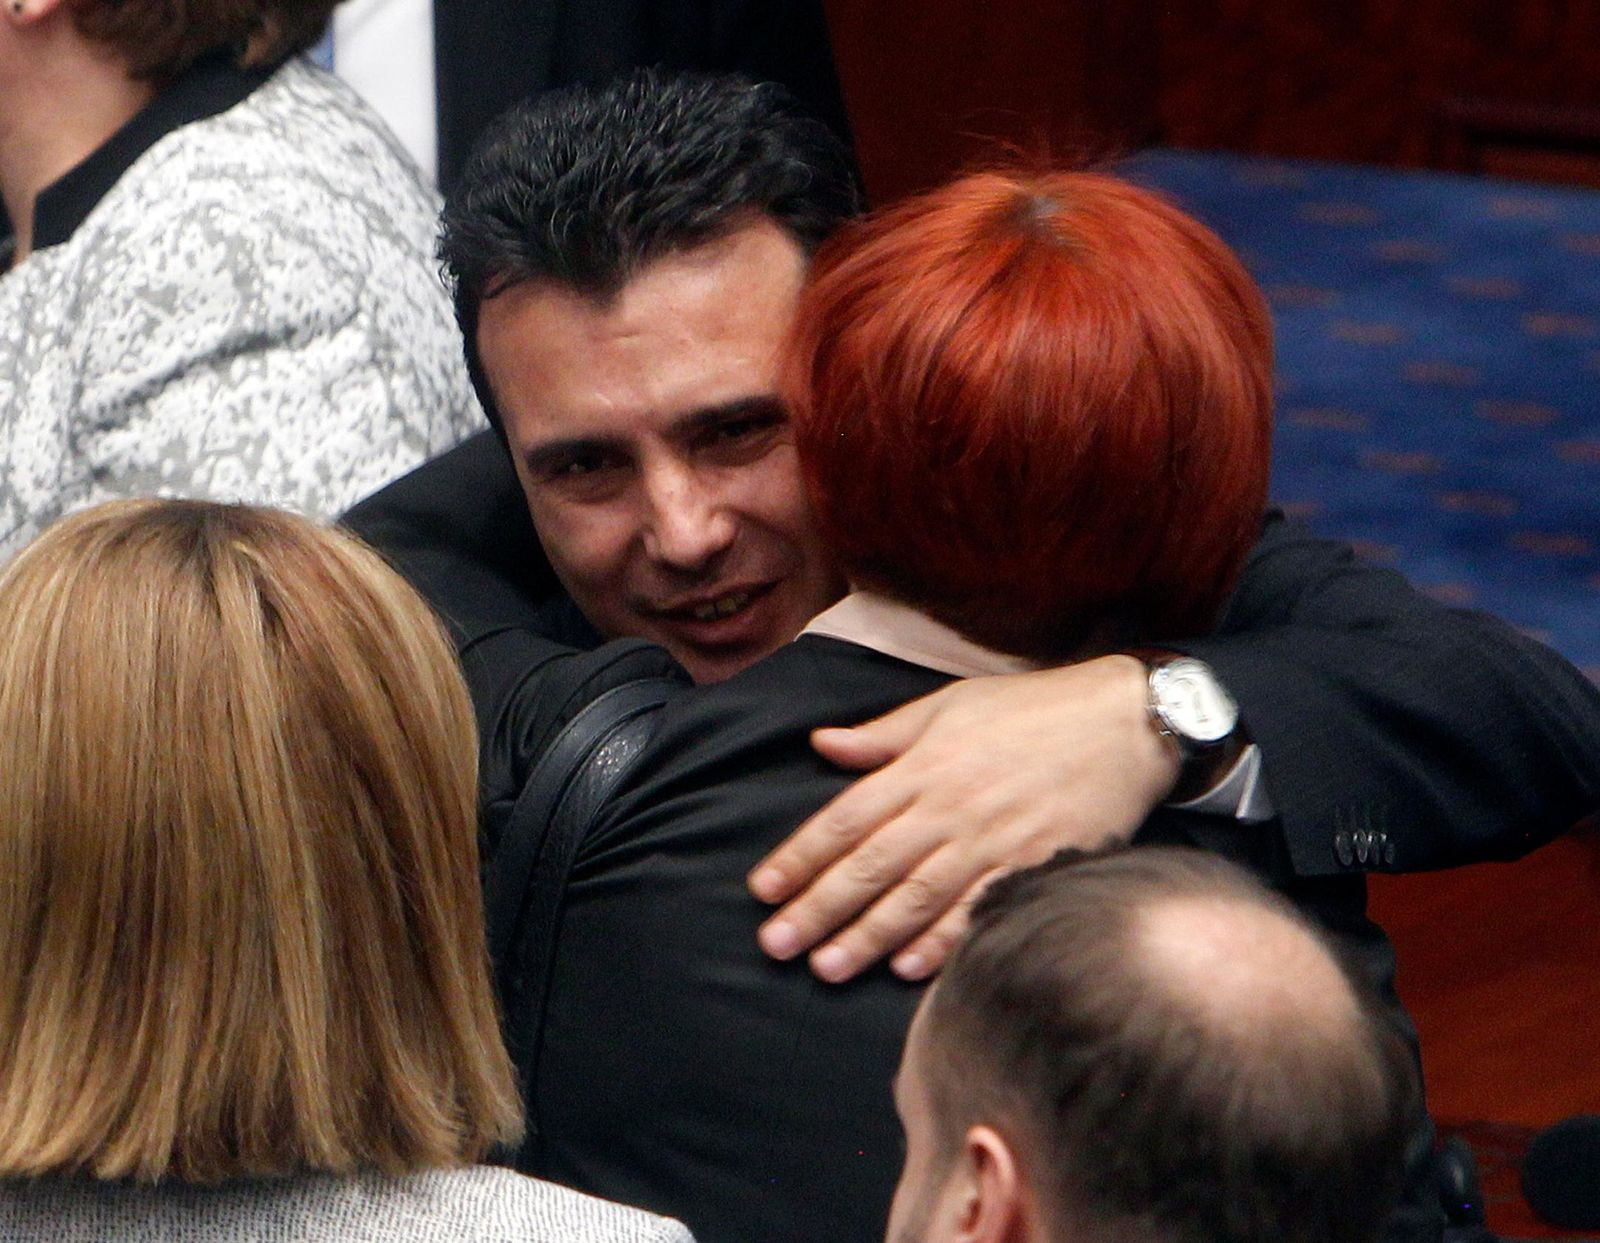 Macedonian Prime Minister Zoran Zaev is greeted by lawmakers after the parliament voted in favor of the constitutional changes, in Macedonian Parliament in the capital Skopje, Friday, Jan. 11, 2019. (AP Photo/Boris Grdanoski)